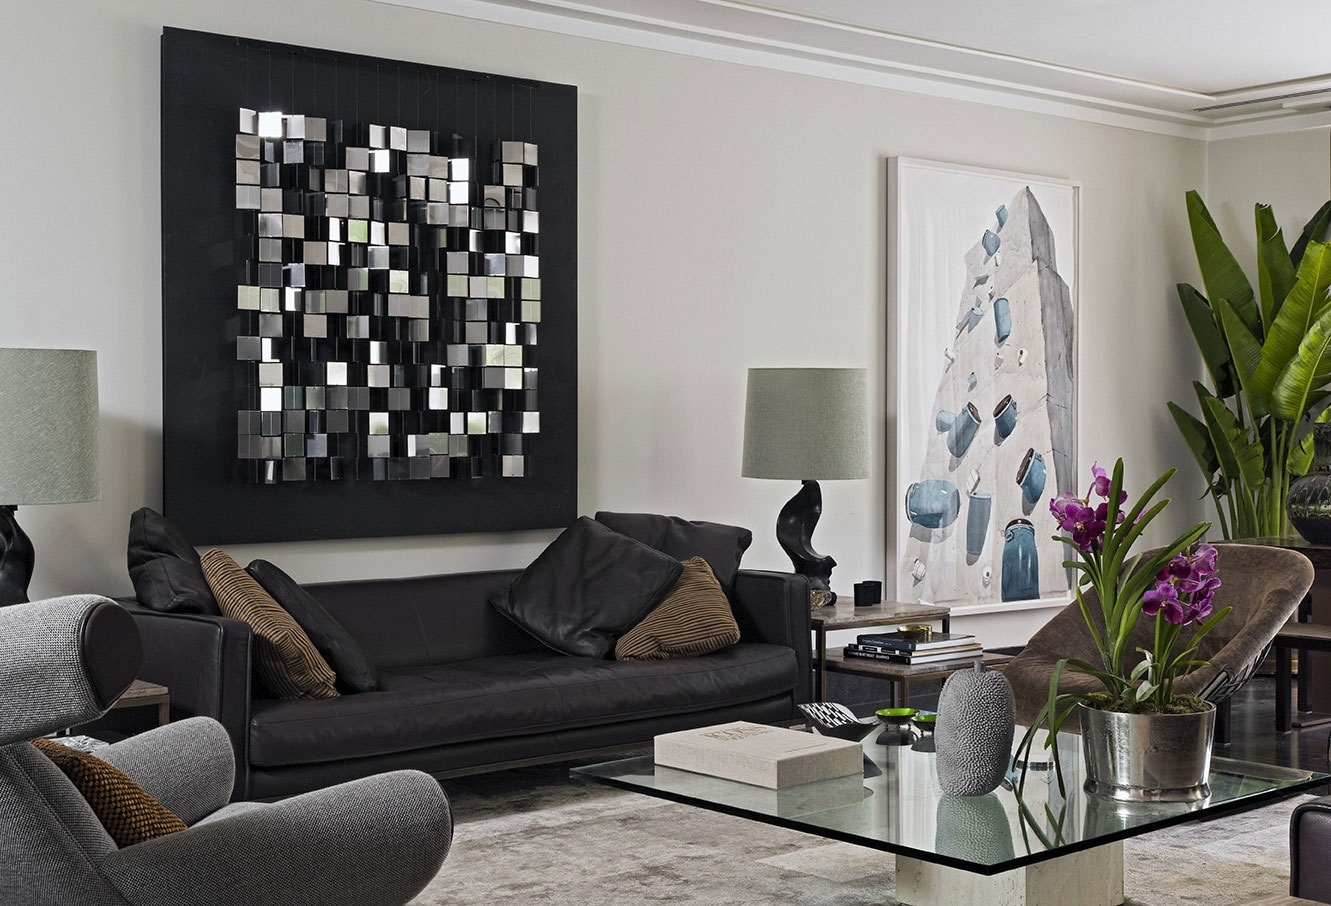 Mozaic Wall Art Decor For Living Room : Ideas Of Wall Art Decor For Throughout Latest Wall Art Ideas For Living Room (View 13 of 20)